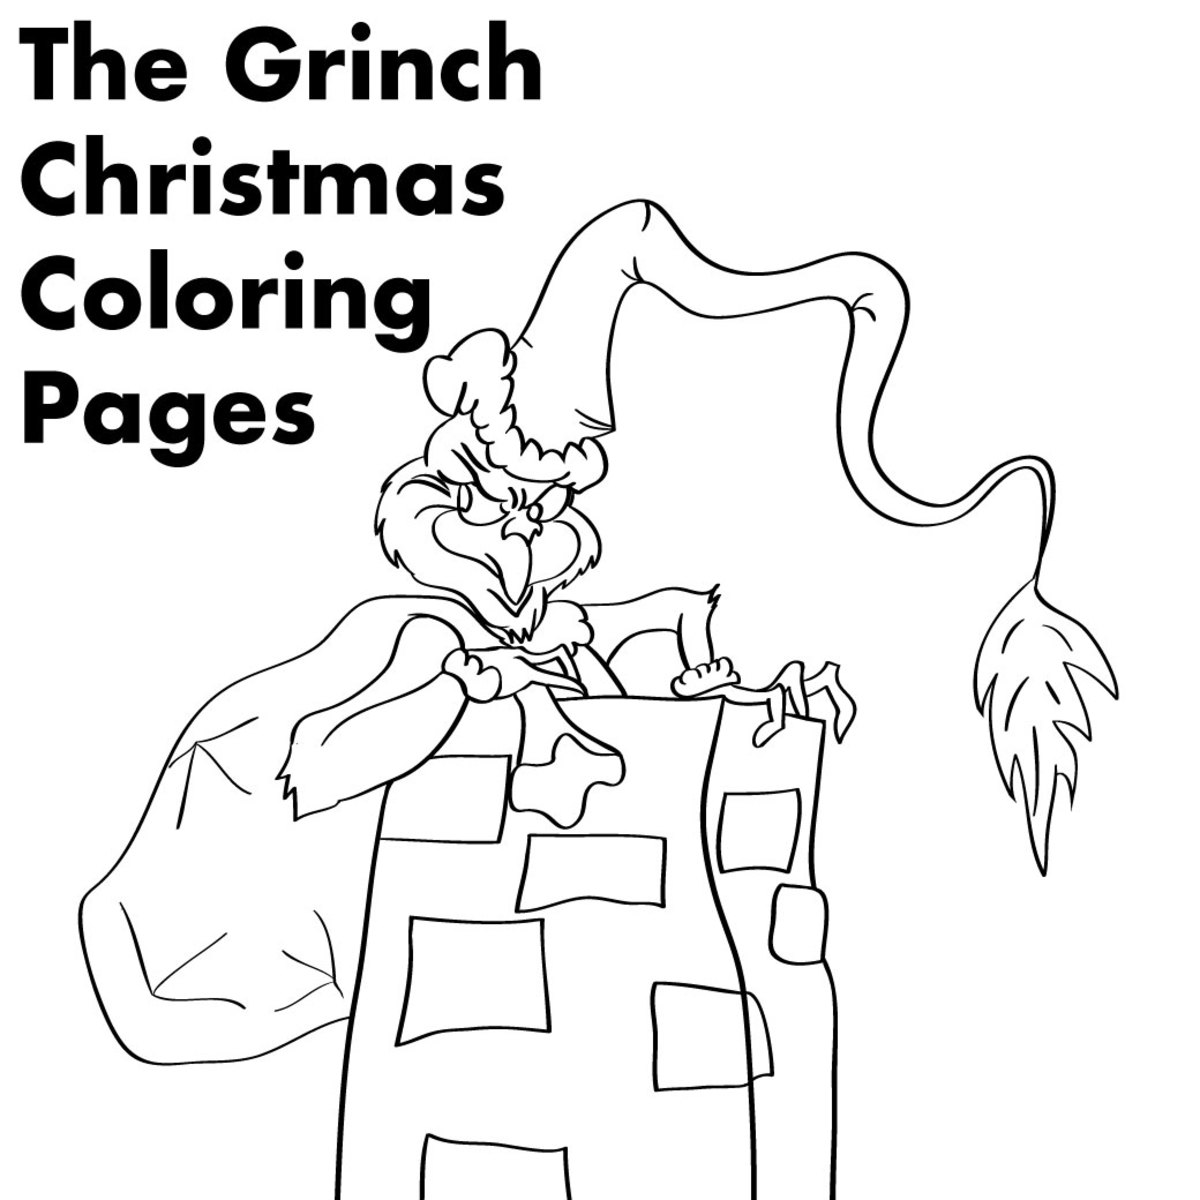 Grinch christmas printable coloring pages holidappy for Coloring pages grinch